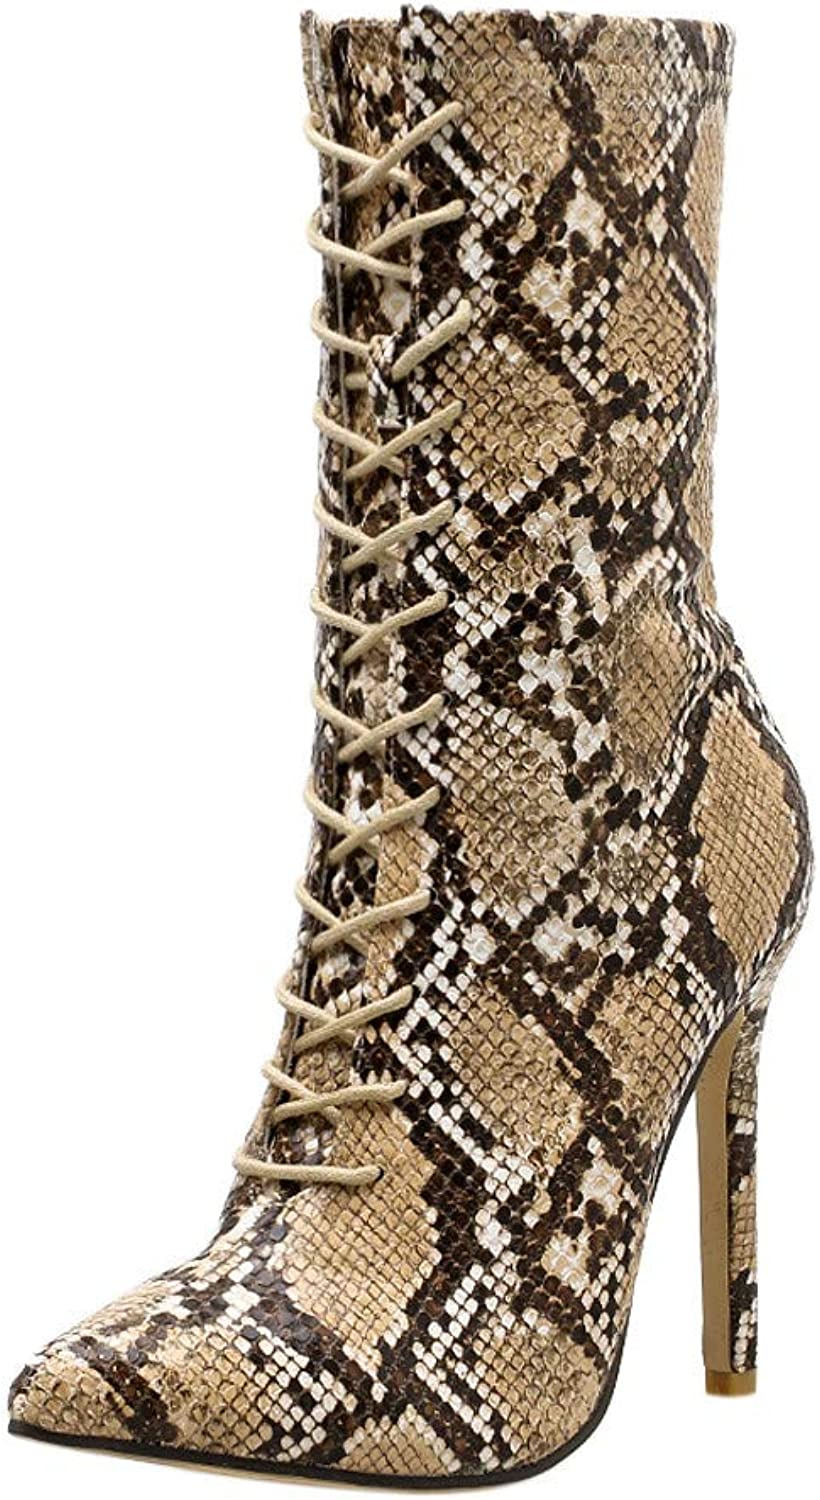 XUANOU Women Pumps Snakeskin Pattern Pointed Finger Zip Thin High Heels shoes Boots